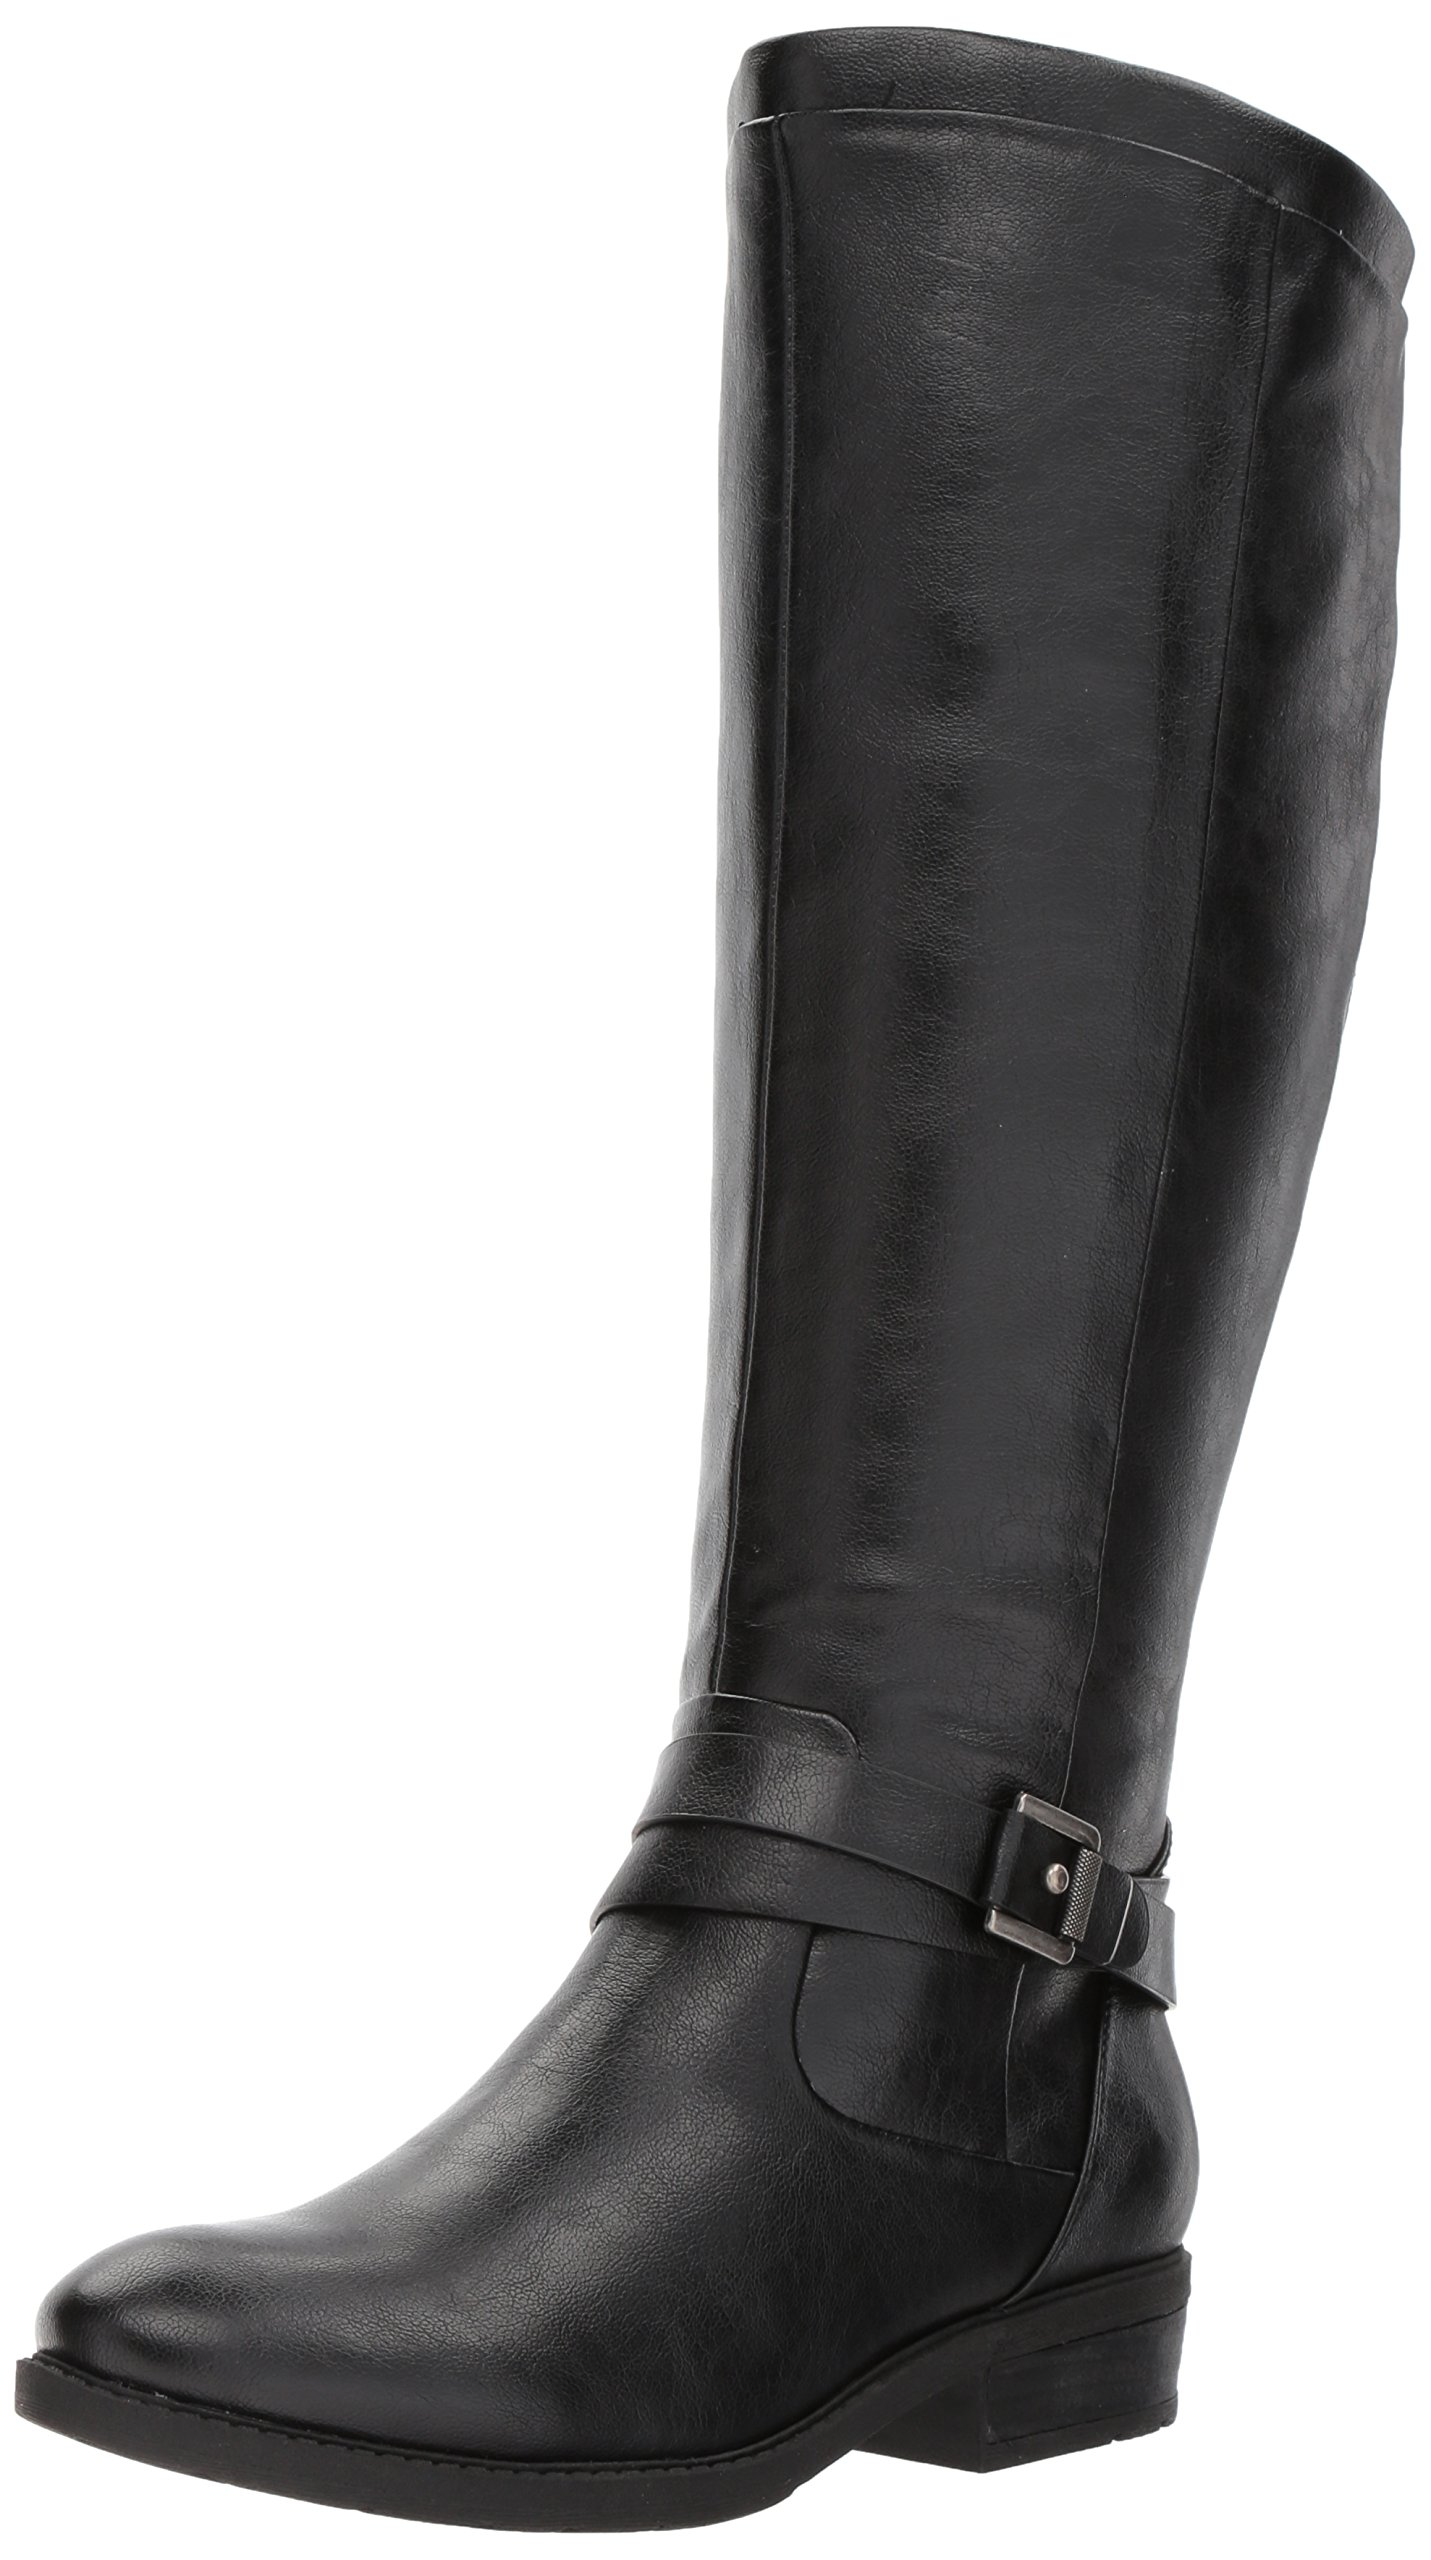 BareTraps Women's Bt Yvonna Riding Boot, Black, 8 US/8 M US